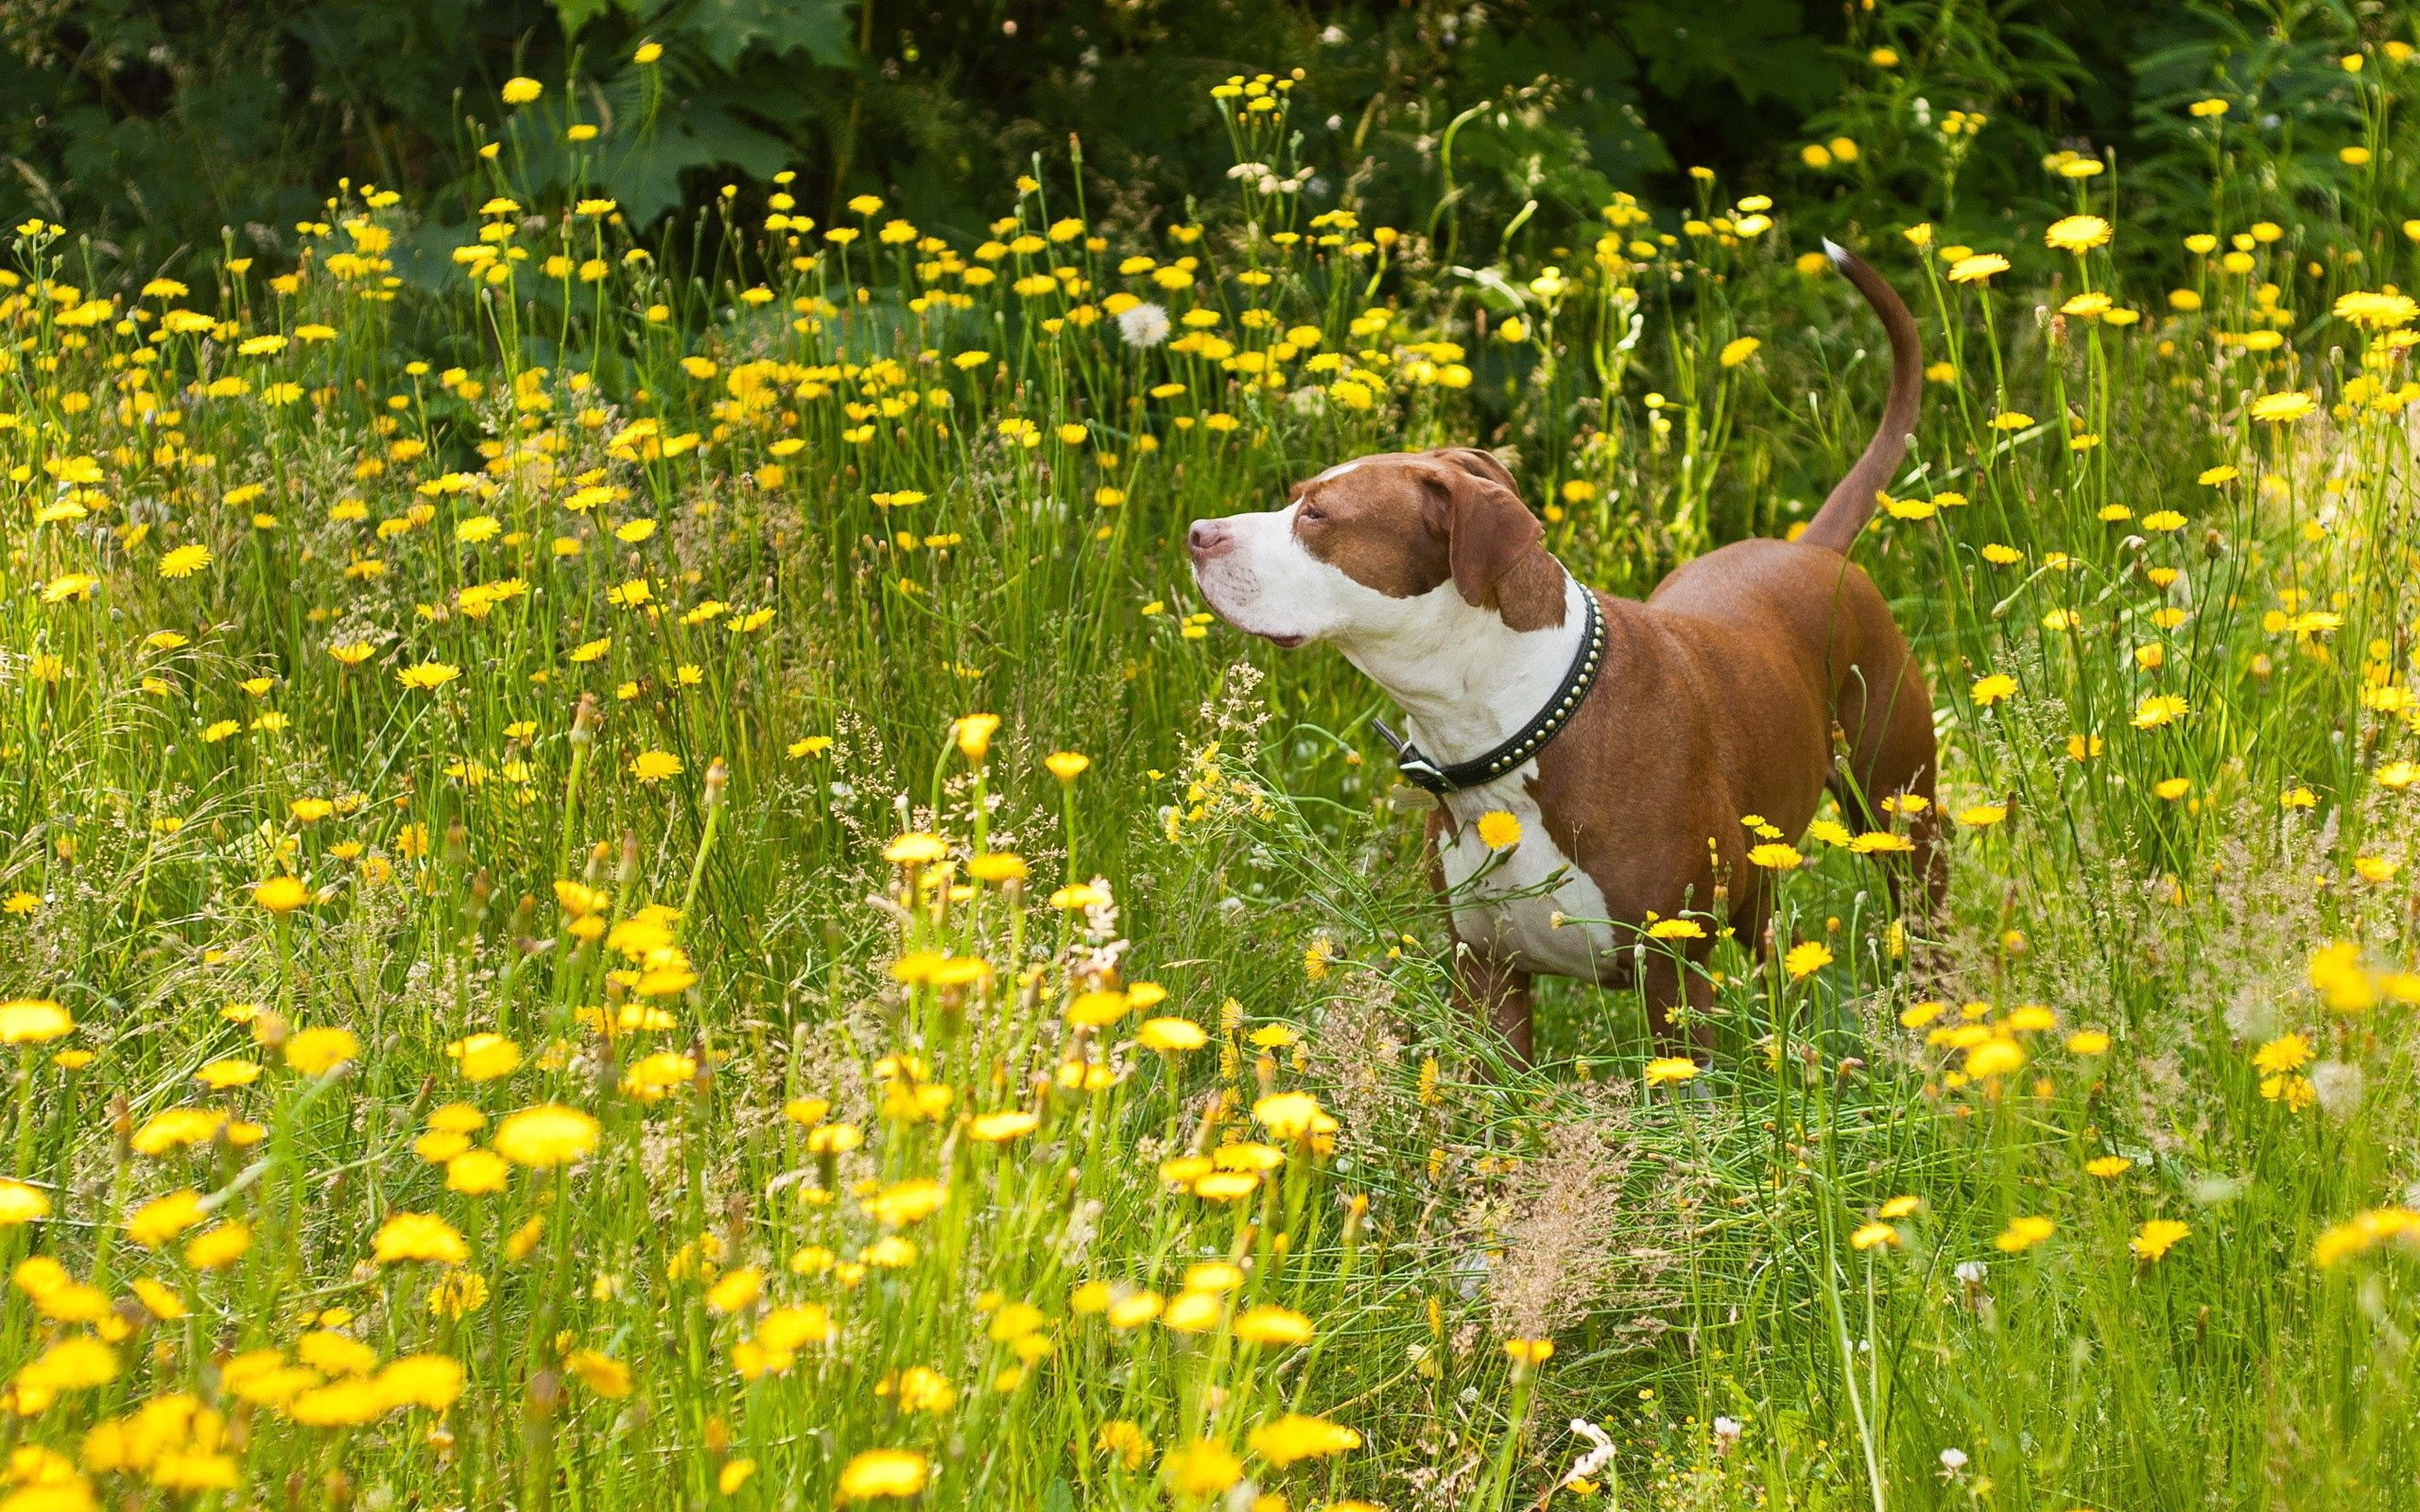 143601 download wallpaper Animals, Dog, Grass, Stroll screensavers and pictures for free